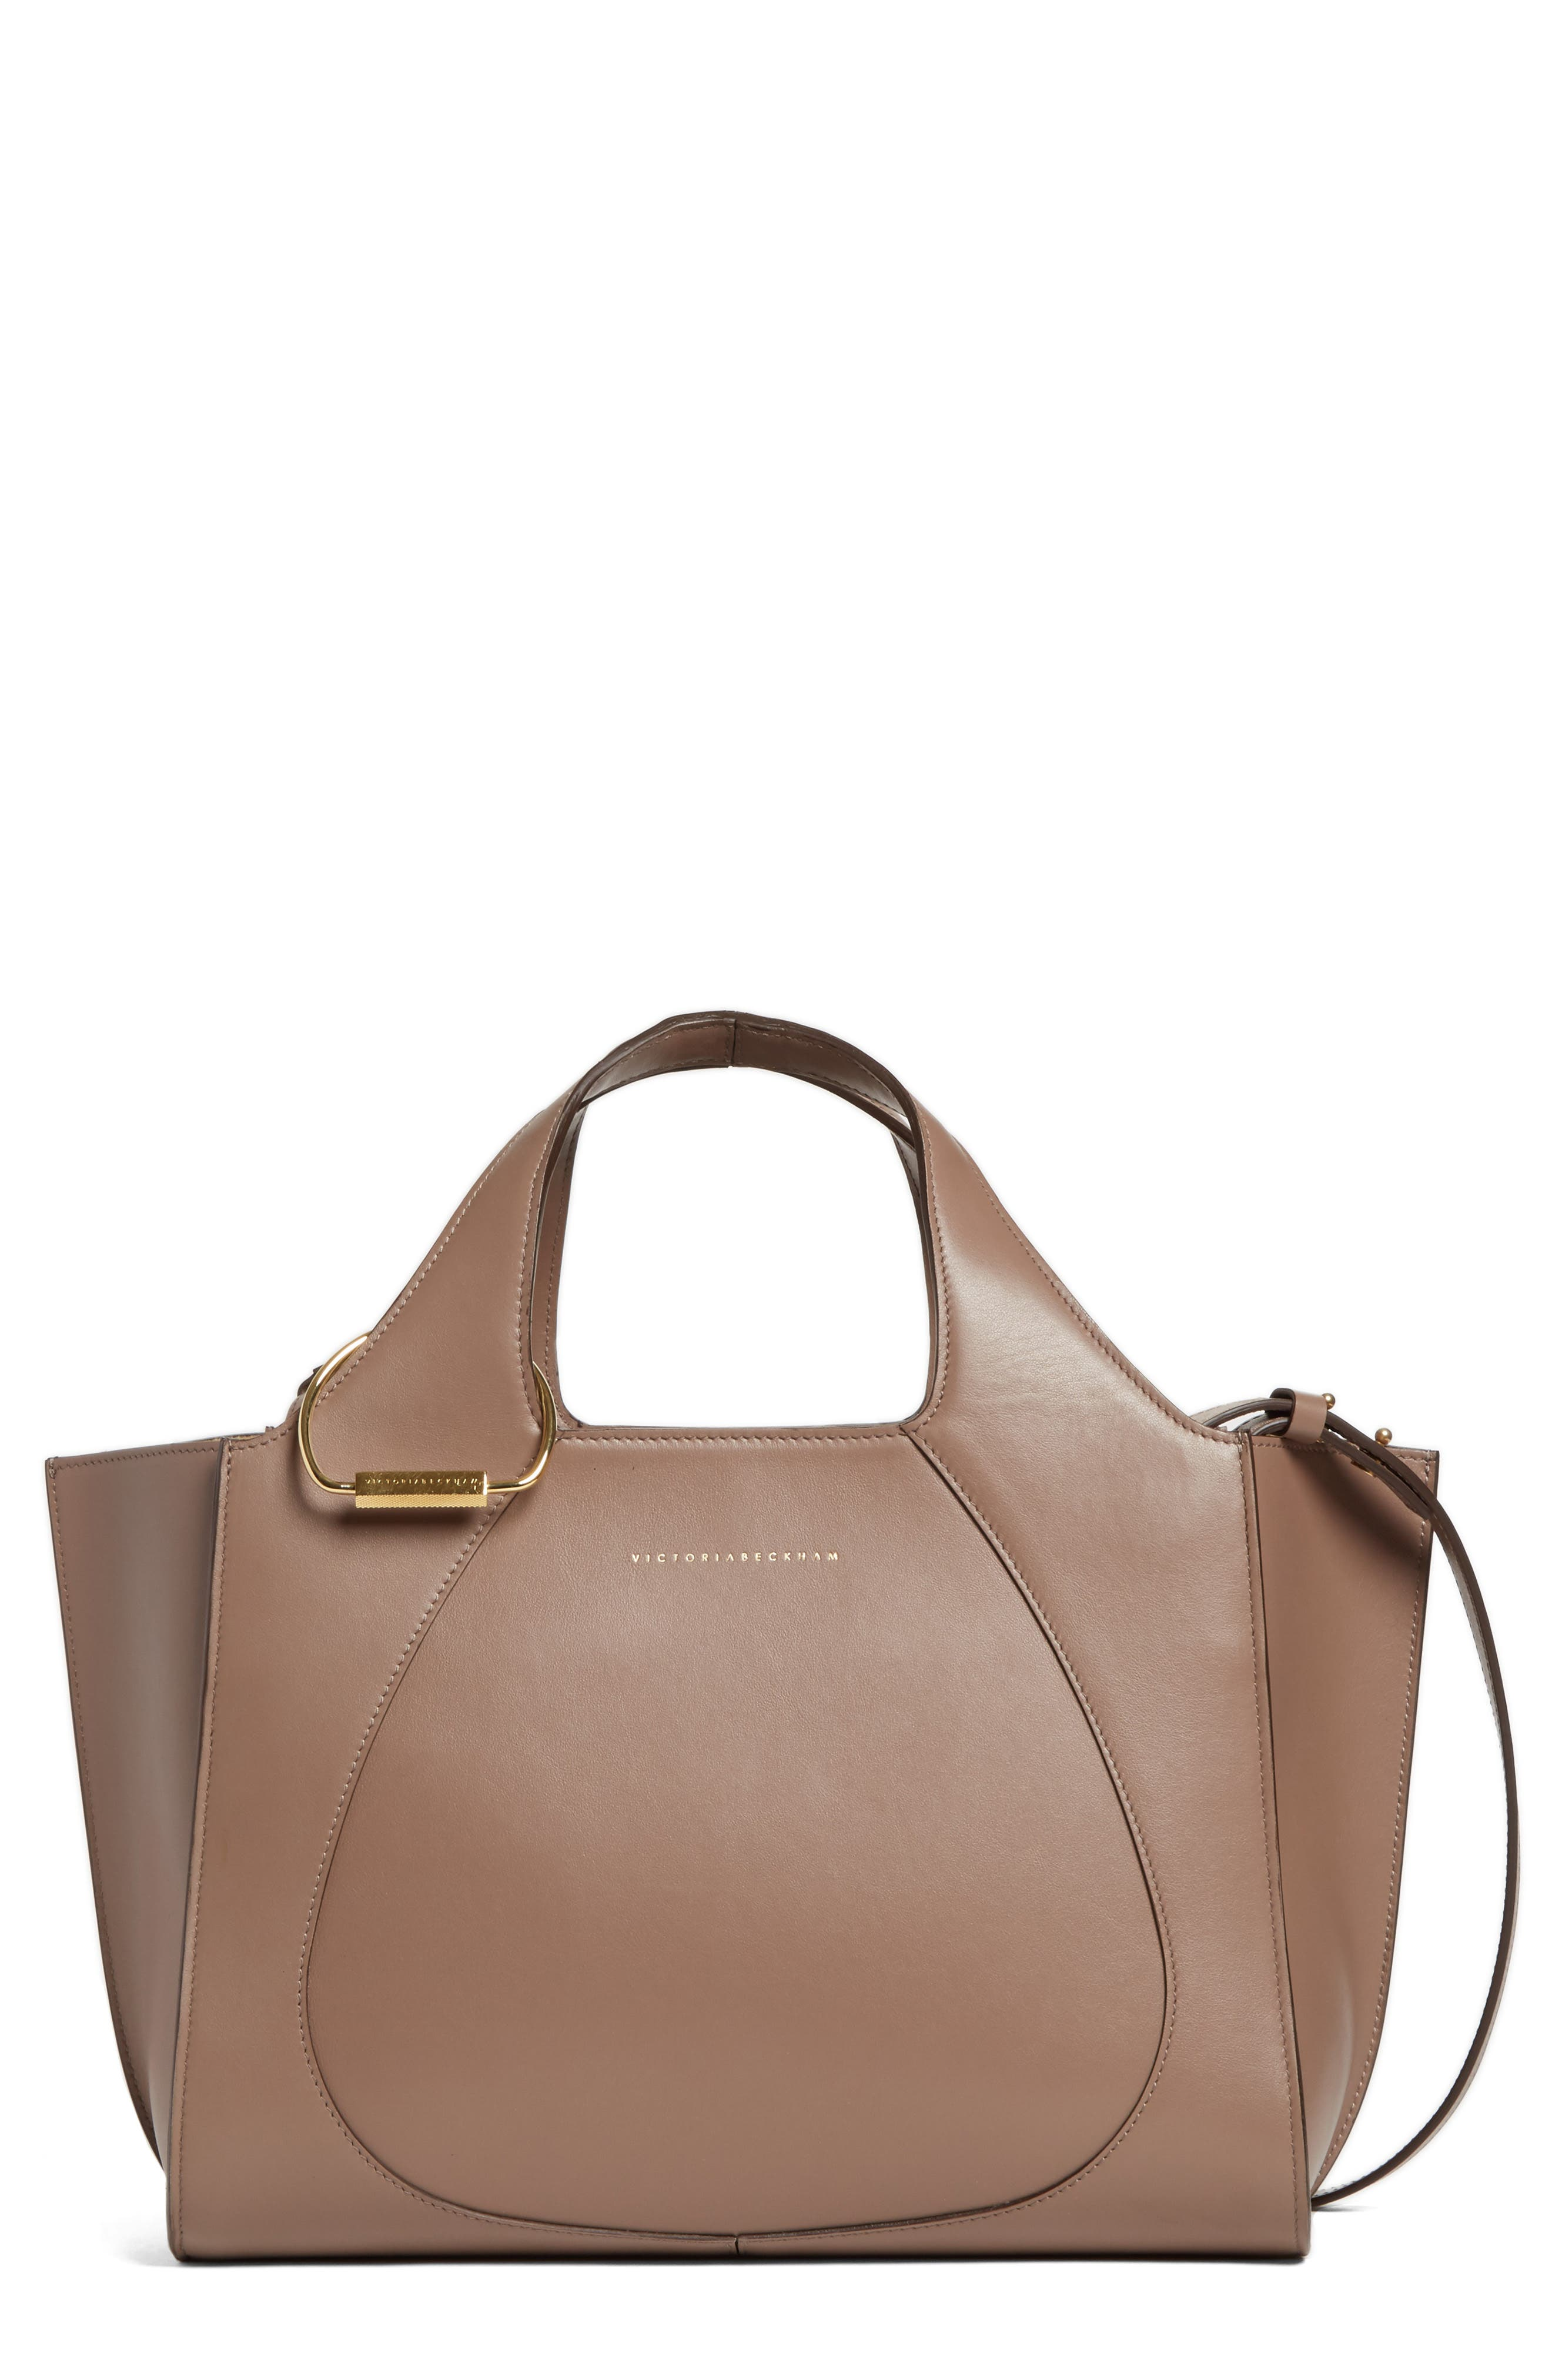 VICTORIA BECKHAM Small Newspaper Leather Tote